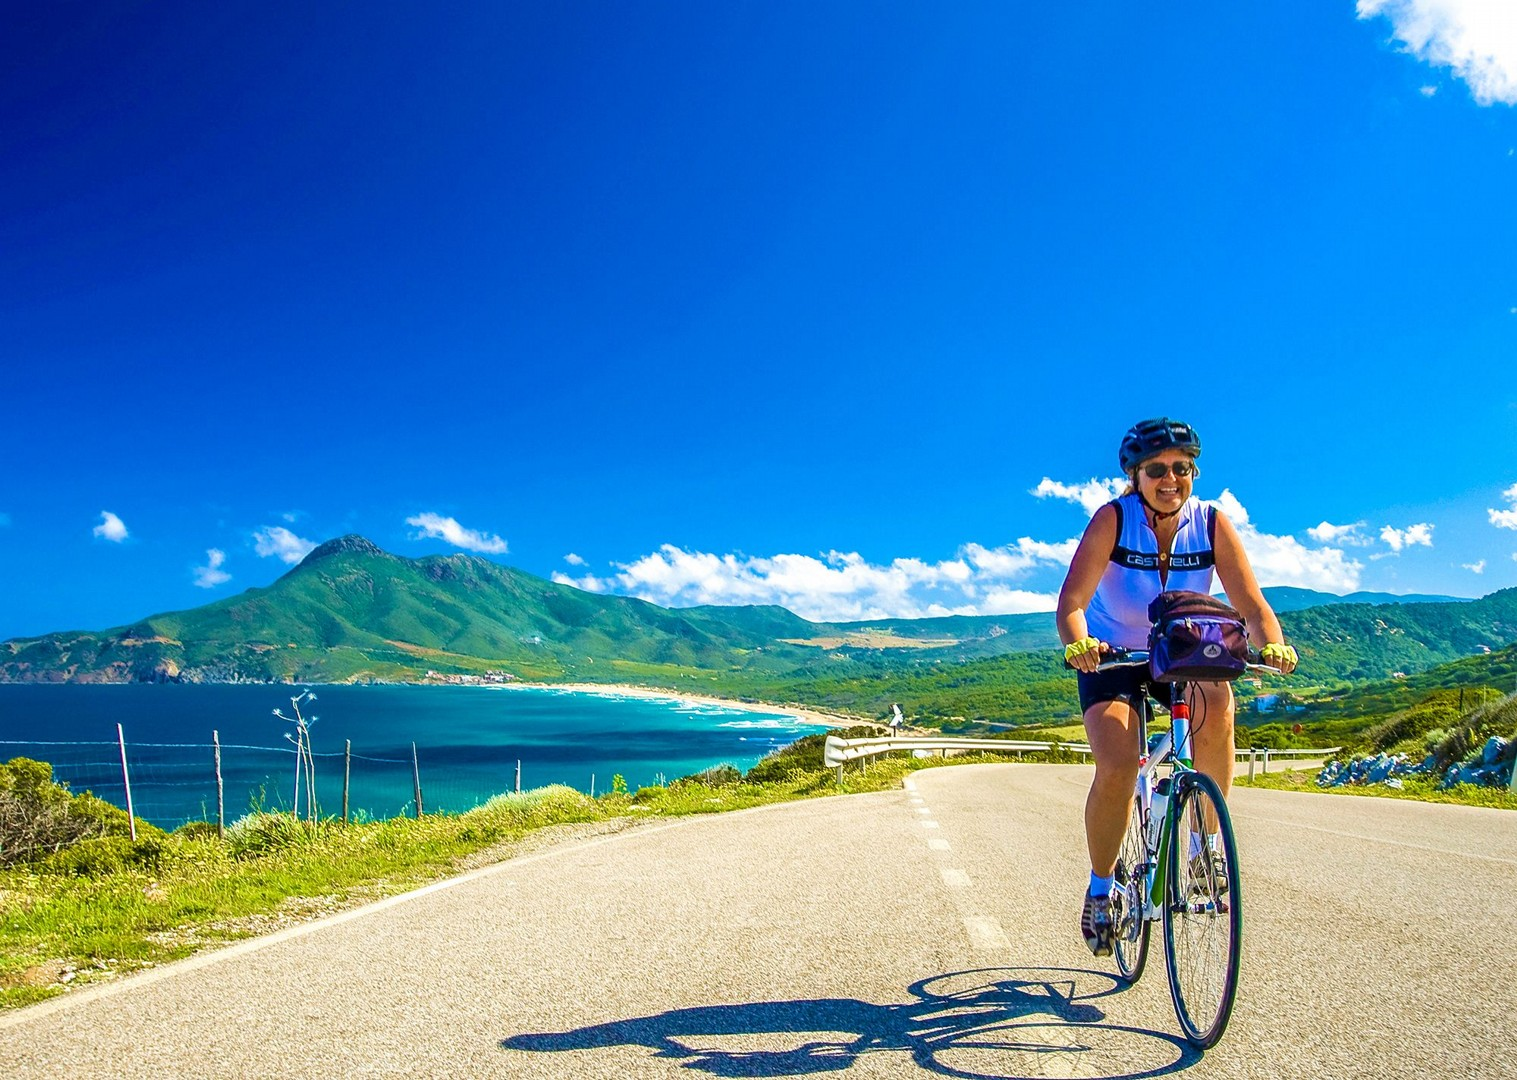 island-of-sardinia-in-italy-guided-leisure-cycling-holiday.jpg - Italy - Sardinia - Island Flavours - Guided Leisure Cycling Holiday - Italia Leisure and Family Cycling